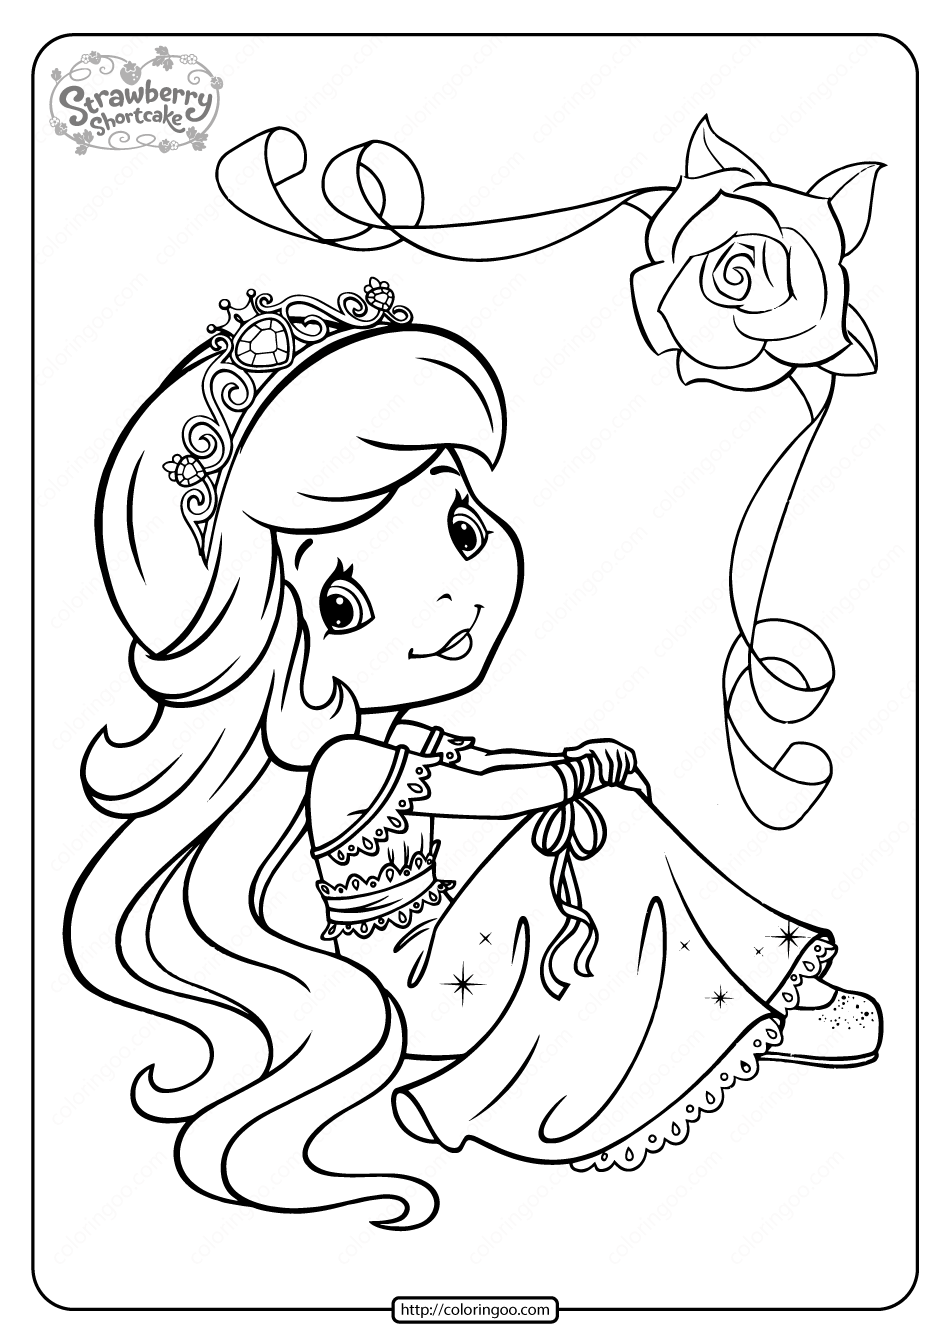 coloring pages of strawberry shortcake strawberry shortcake berrykins coloring pages free shortcake pages of coloring strawberry